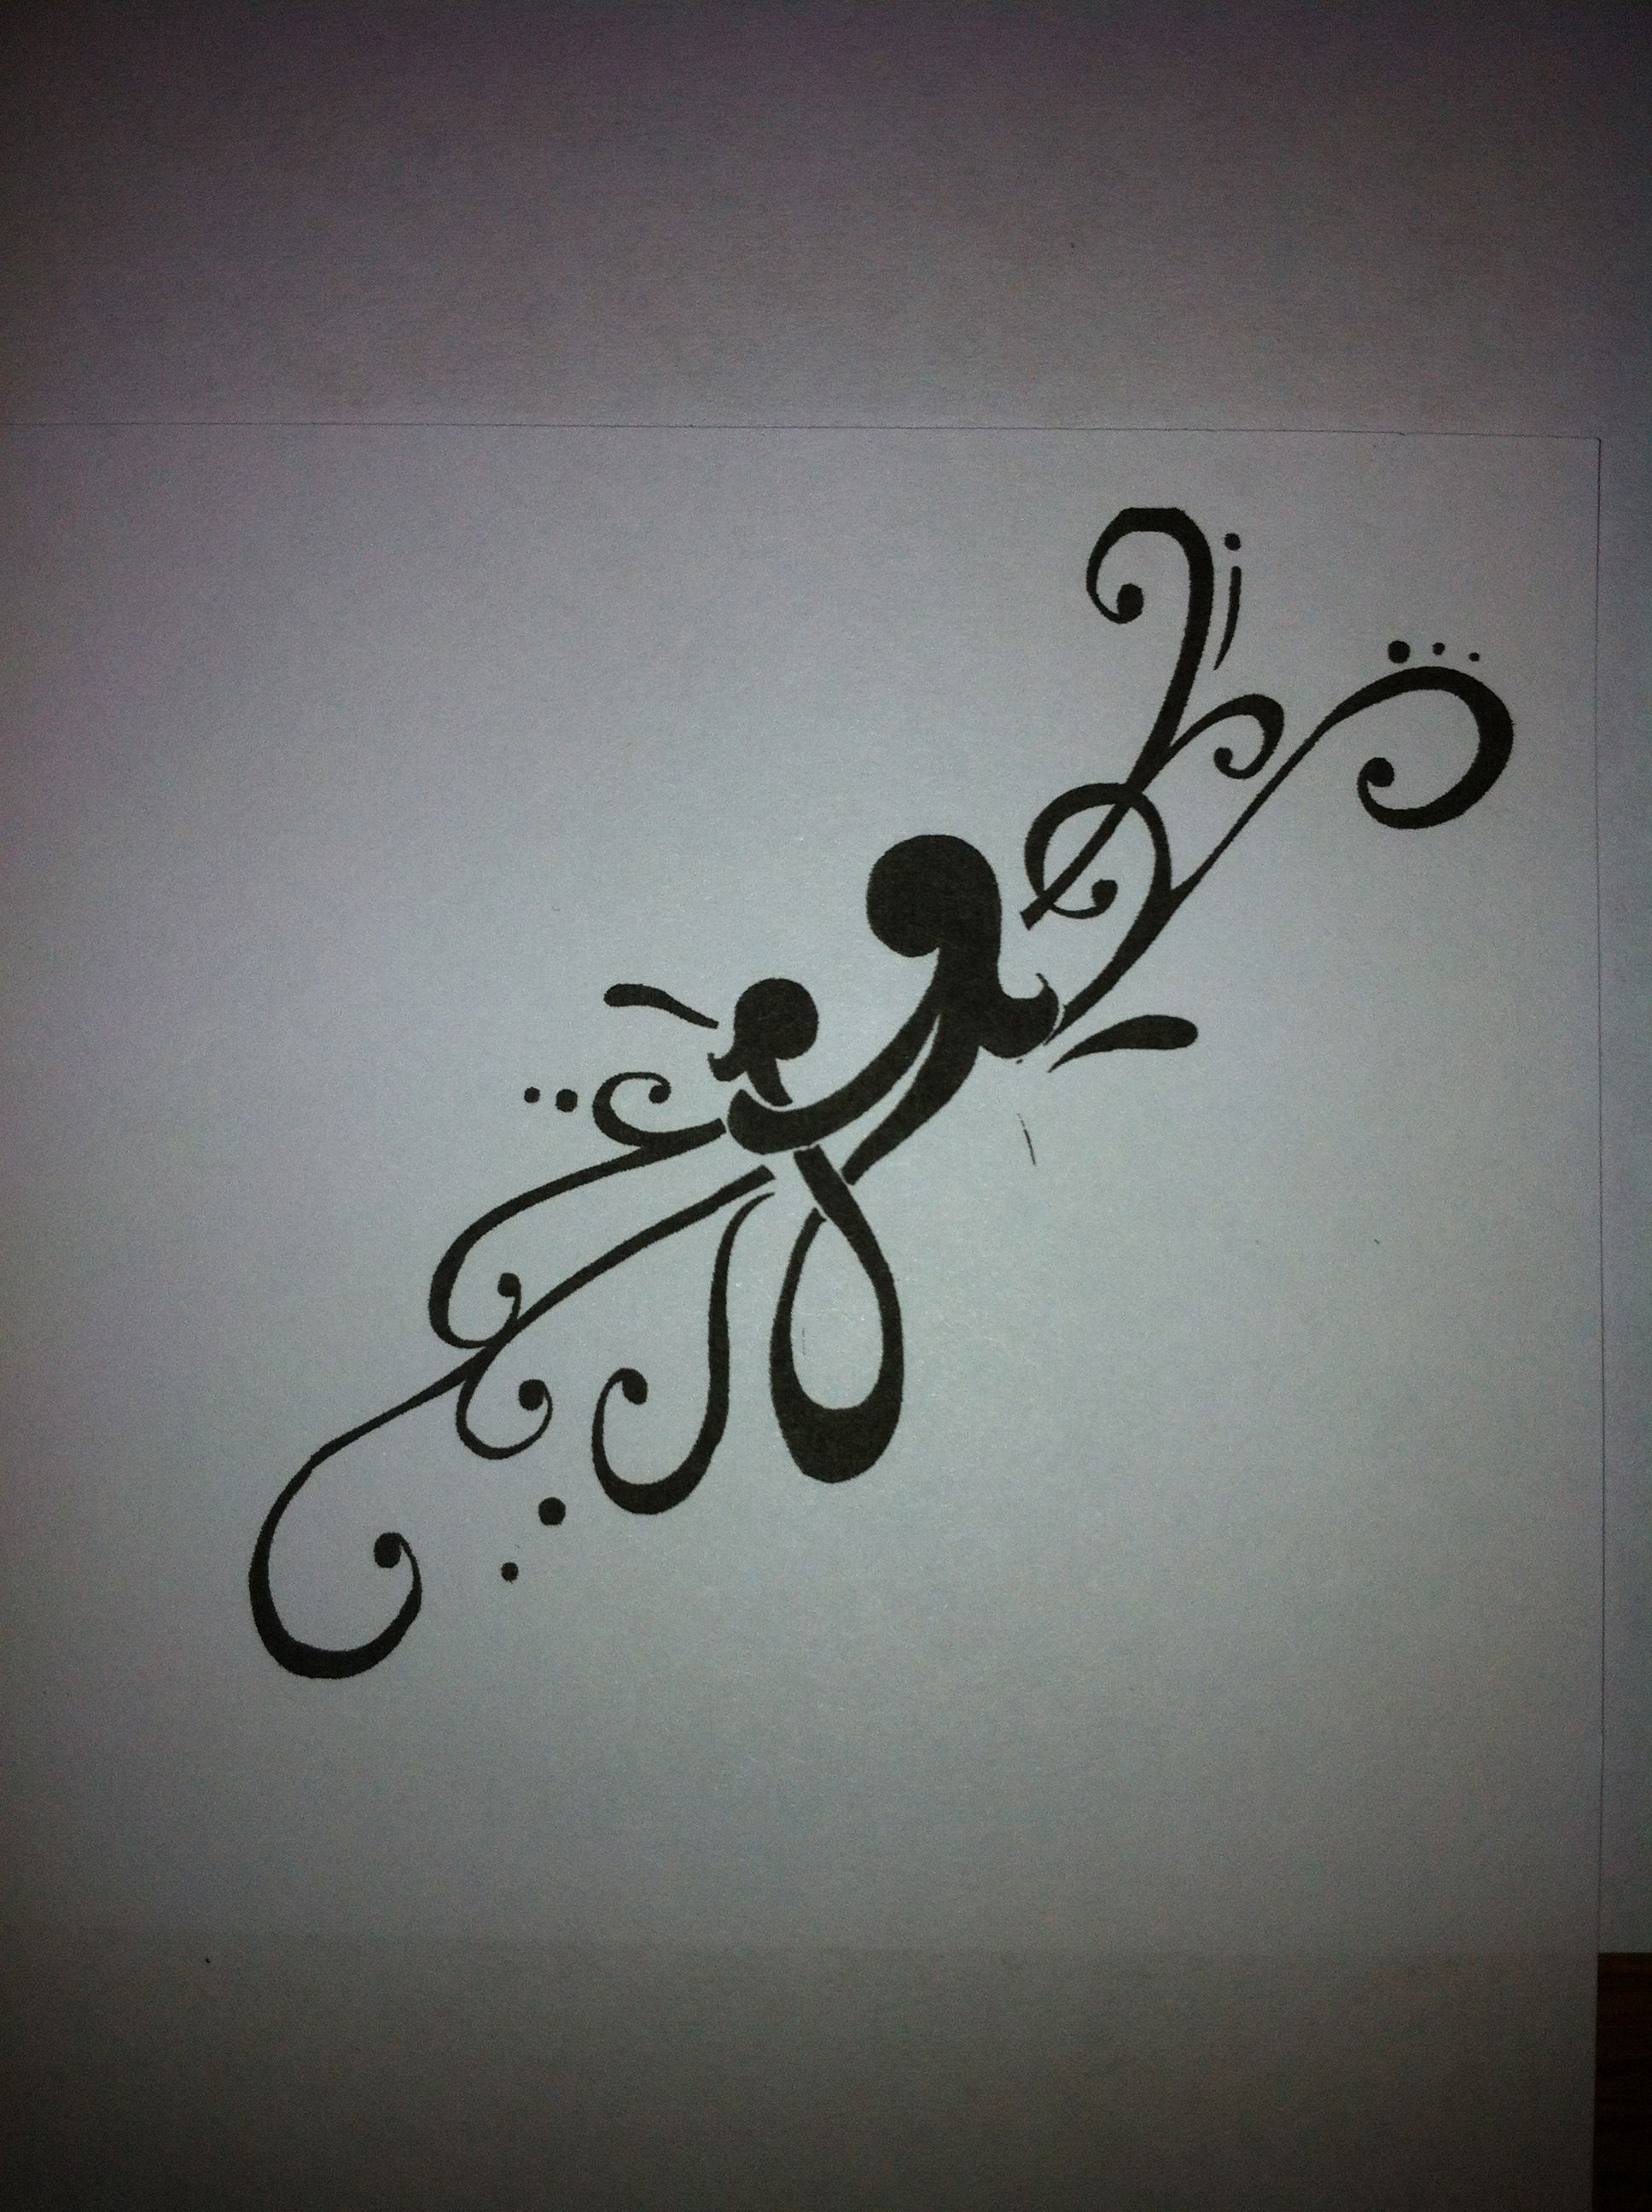 Related Pictures Mother Daughter Symbols Tattoo Designs Car Artsy